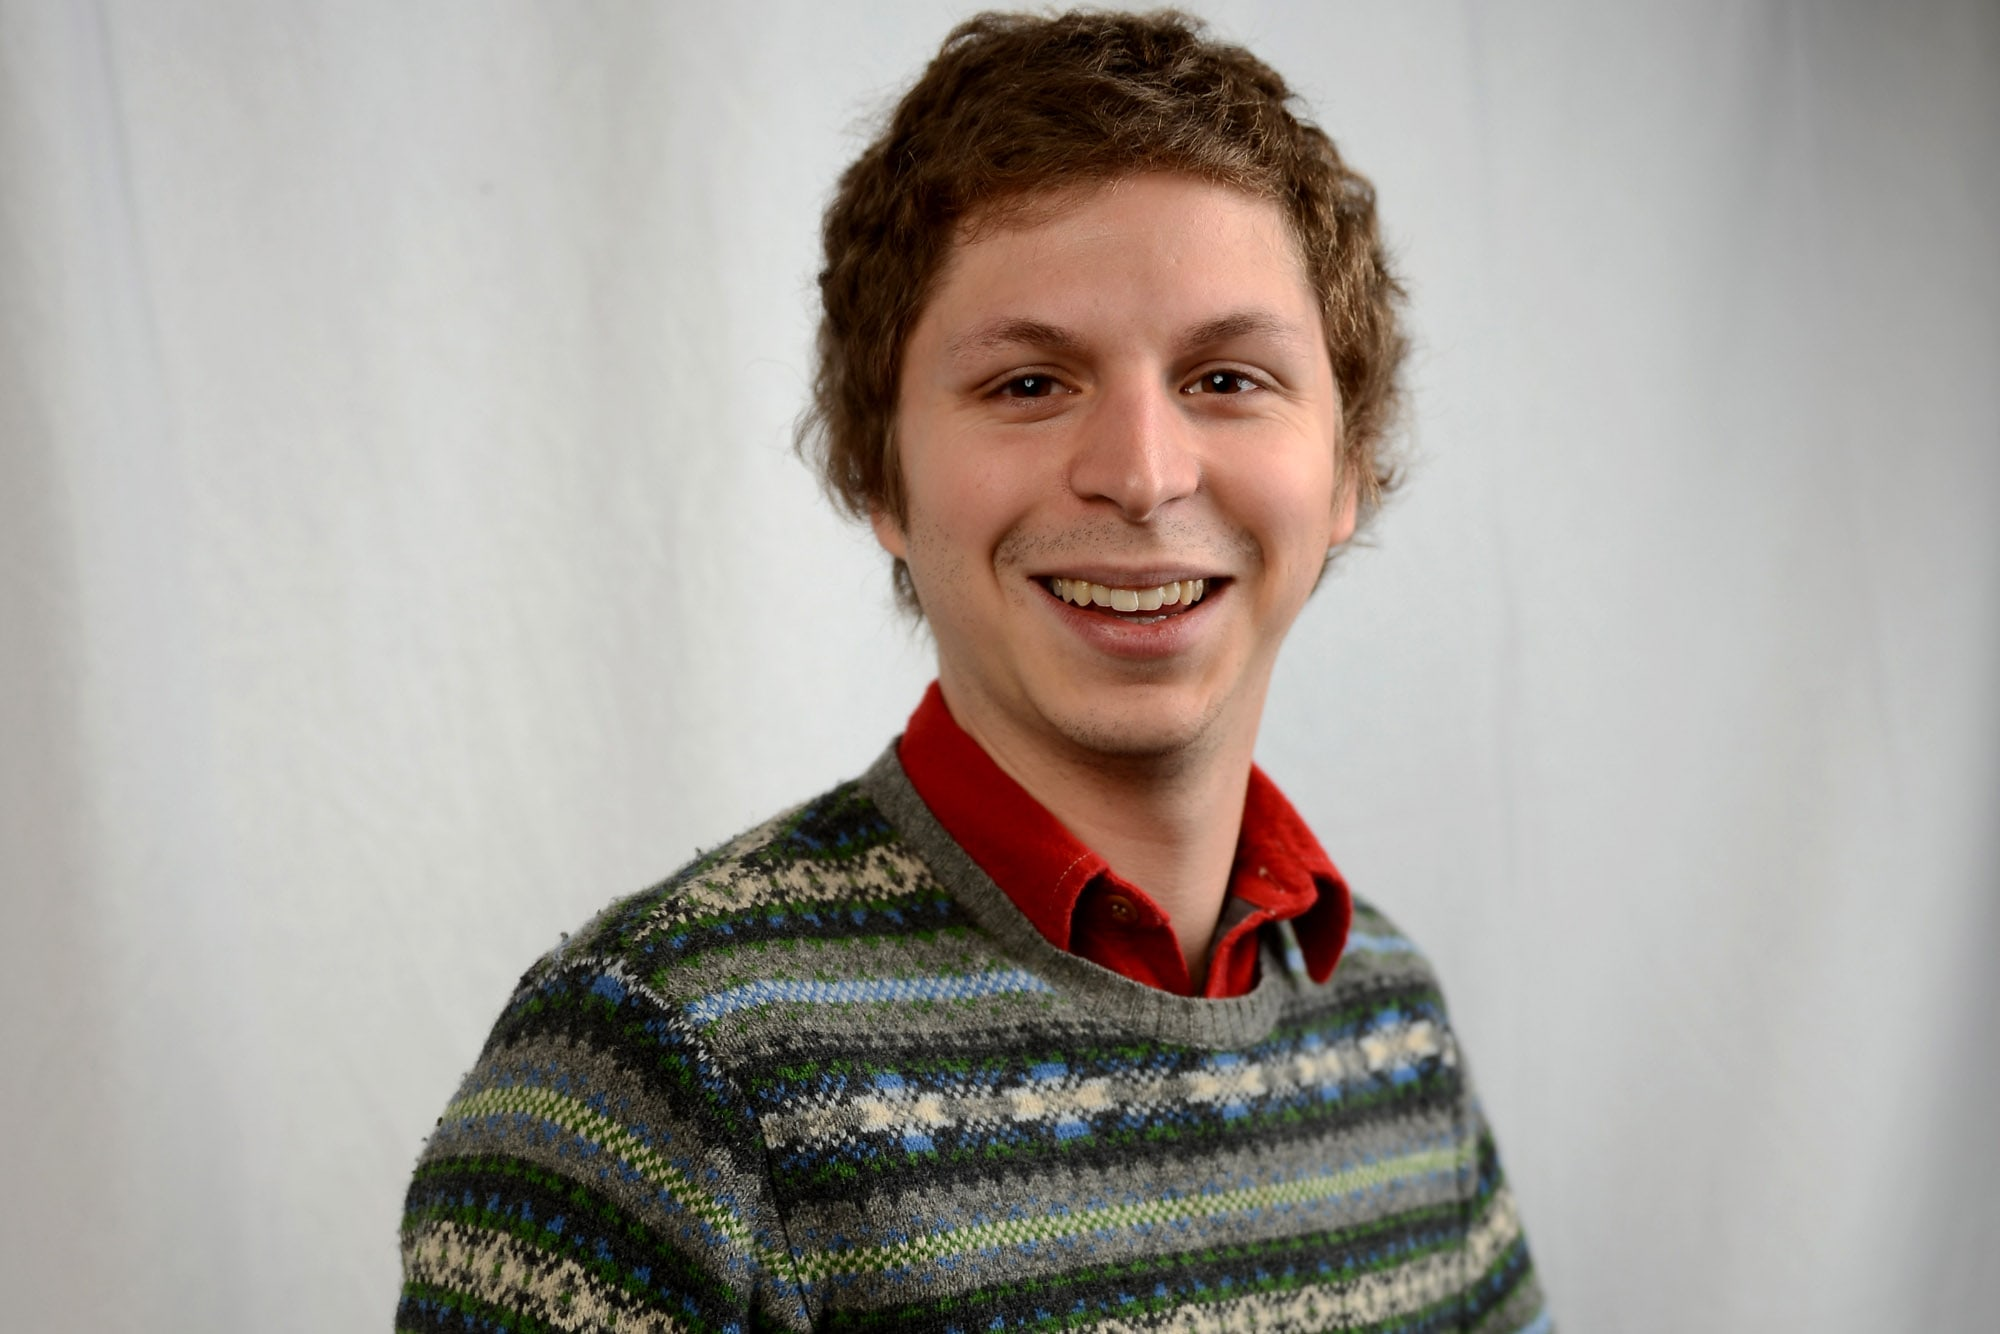 Michael Cera Wallpapers hd